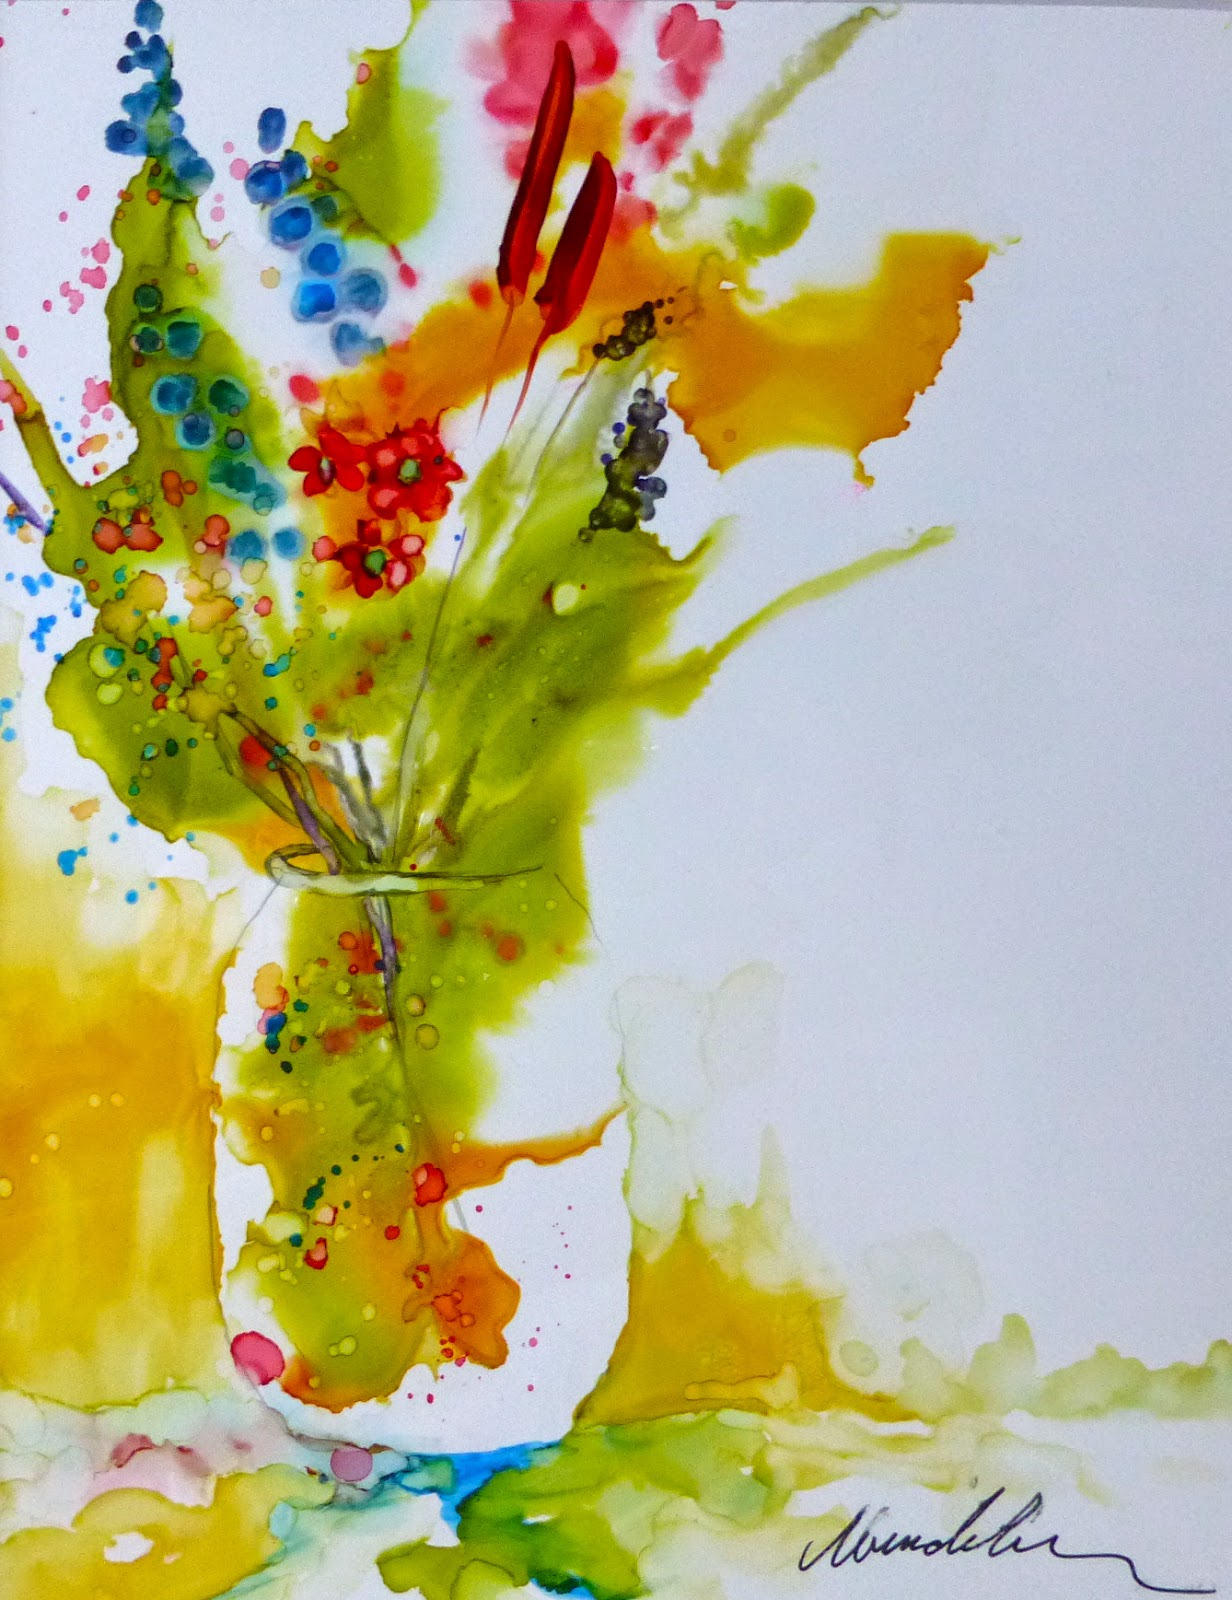 How to paint with alcohol inks by wendy videlock learn for Painting while drinking wine